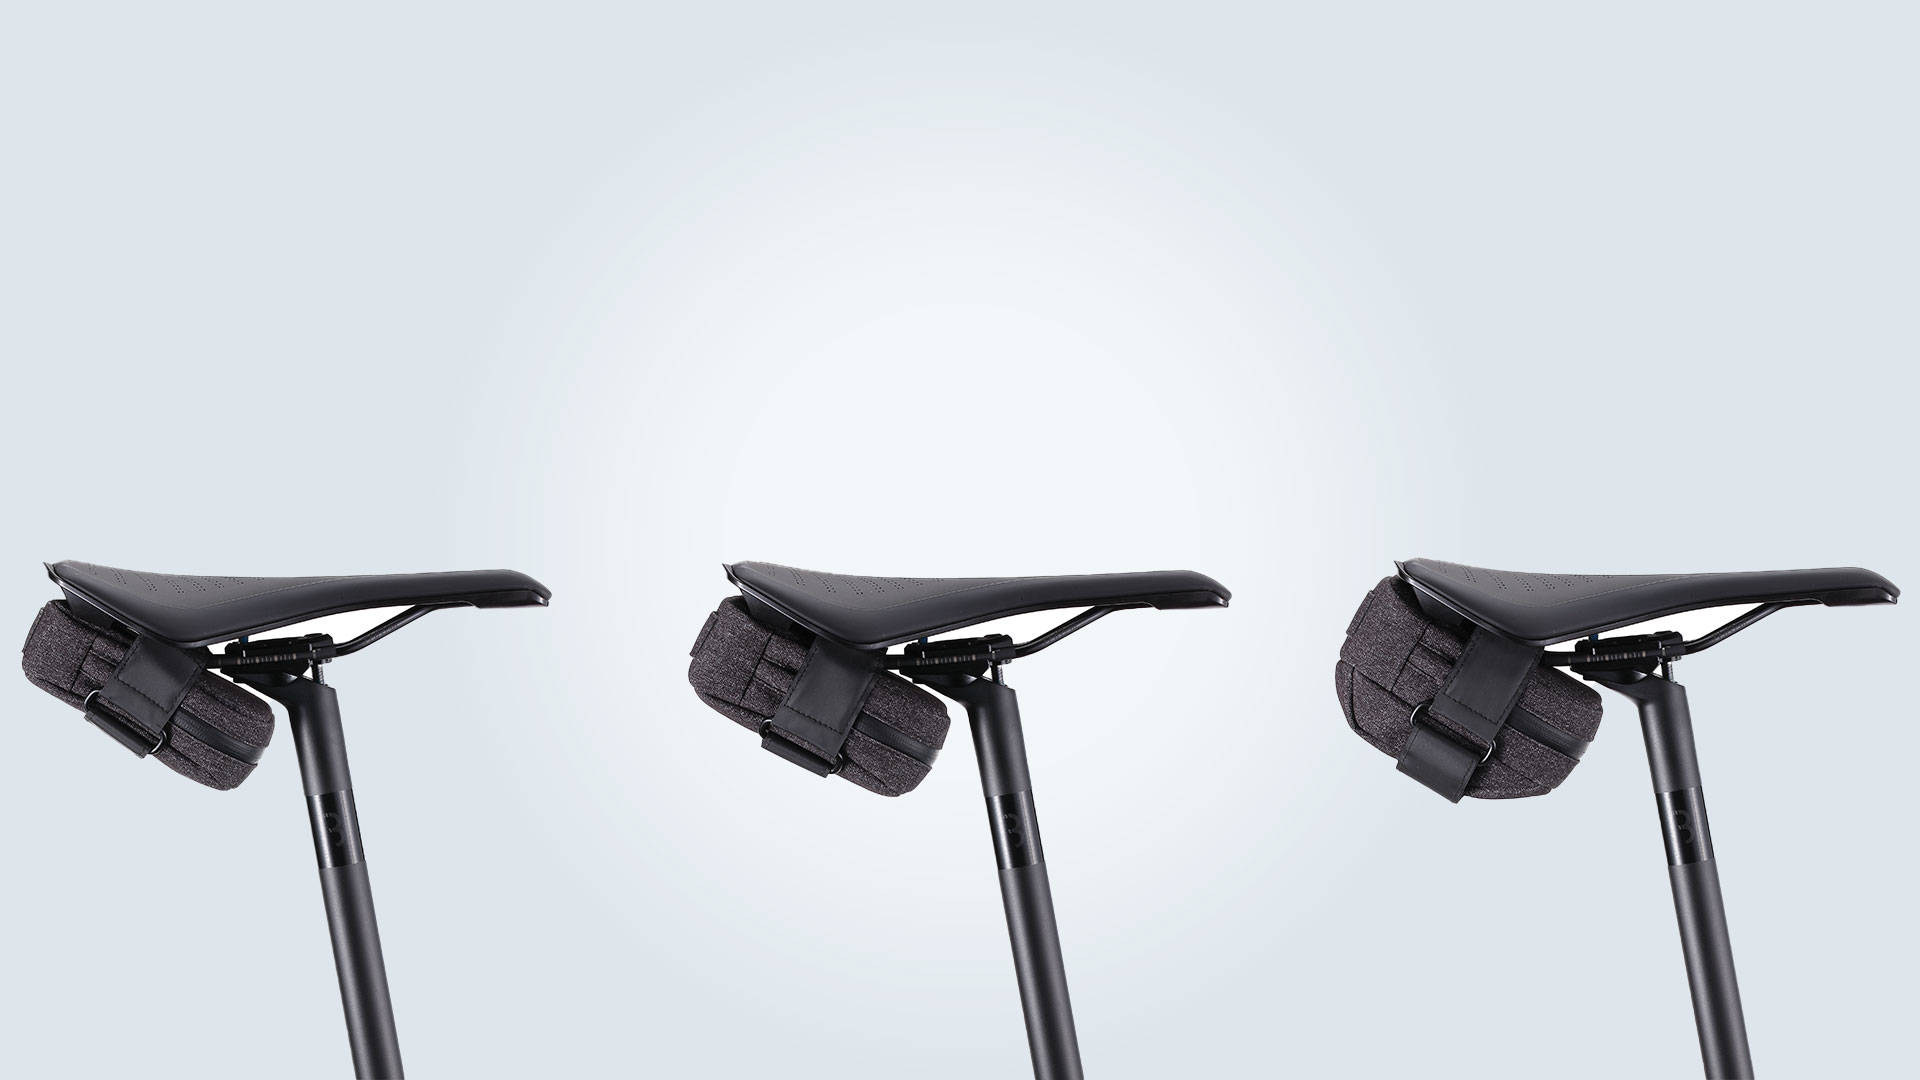 Three sizes